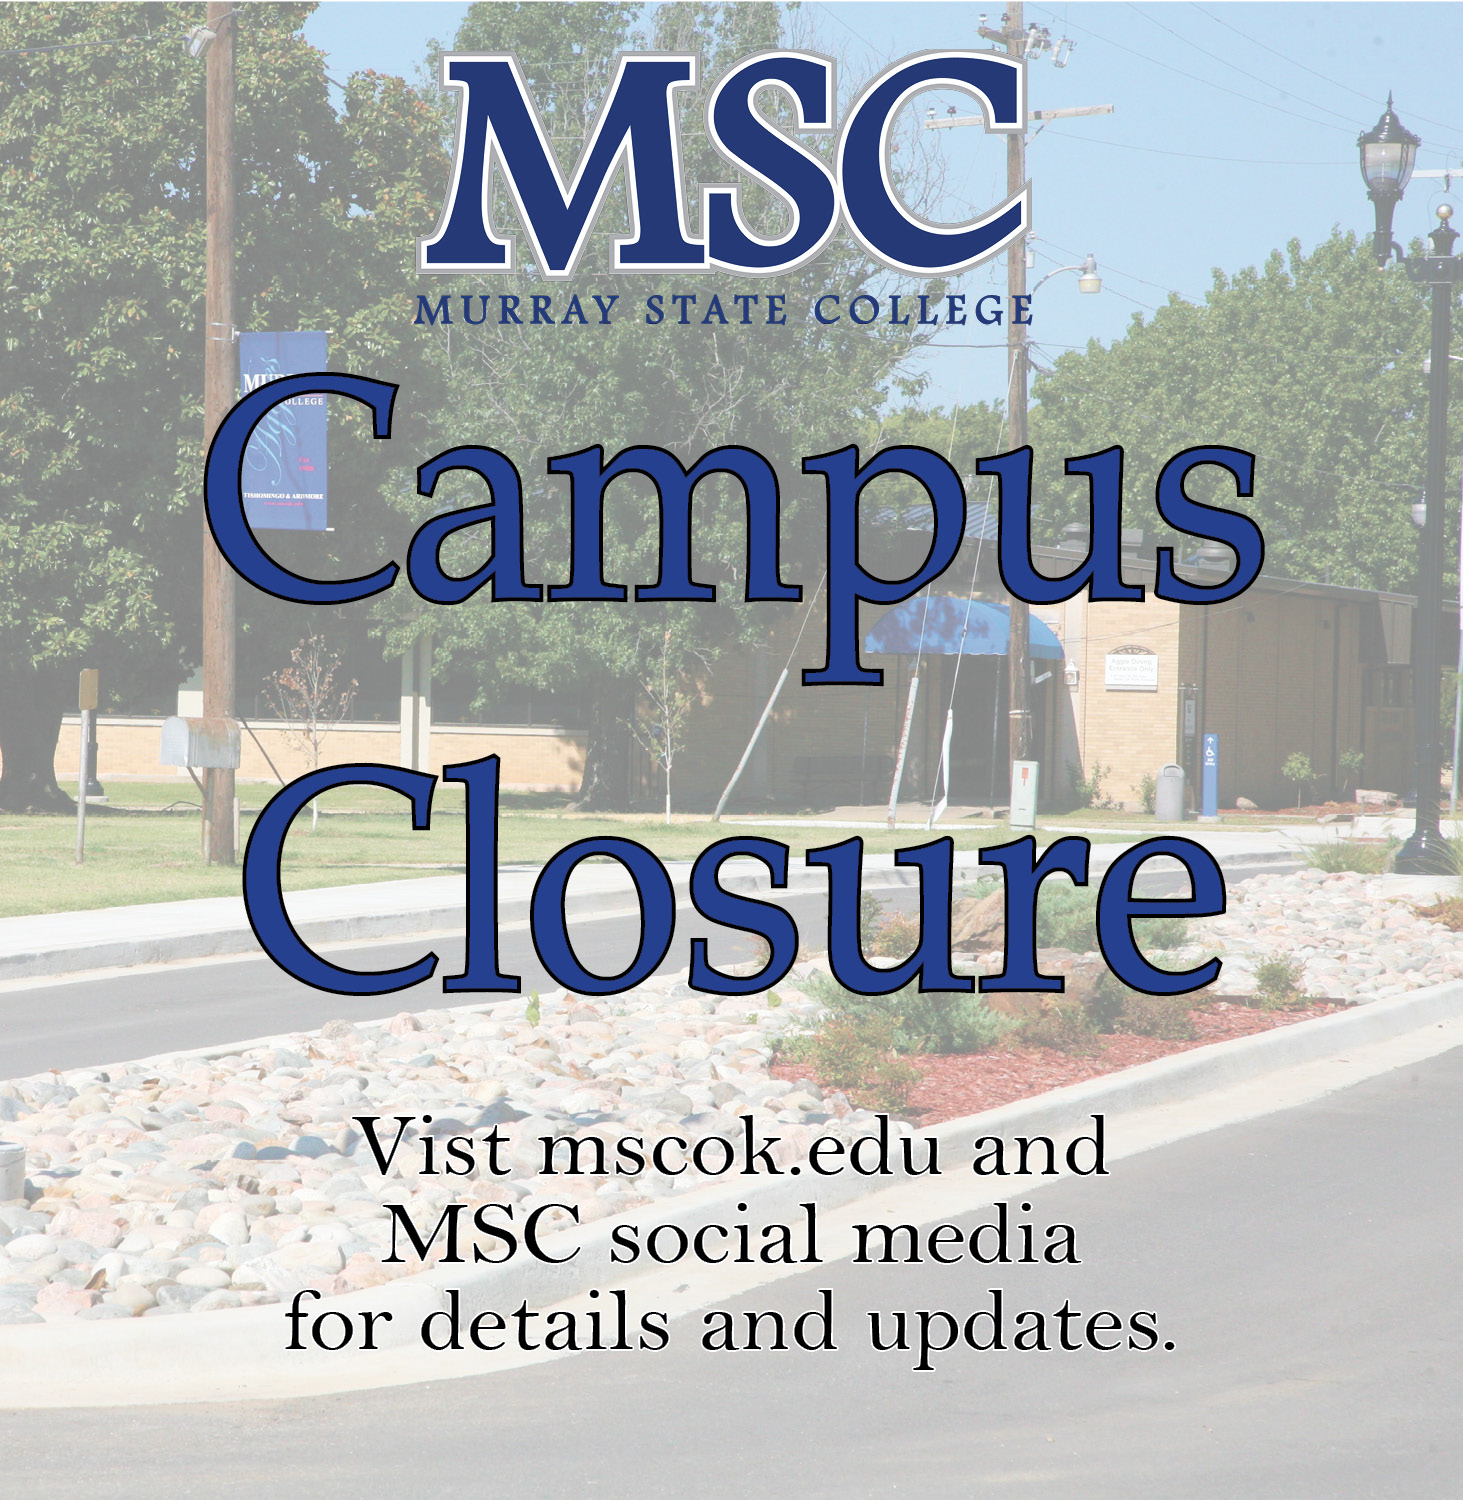 Message from President McDaniel: MSC transitions to all online classes beginning March 30th.